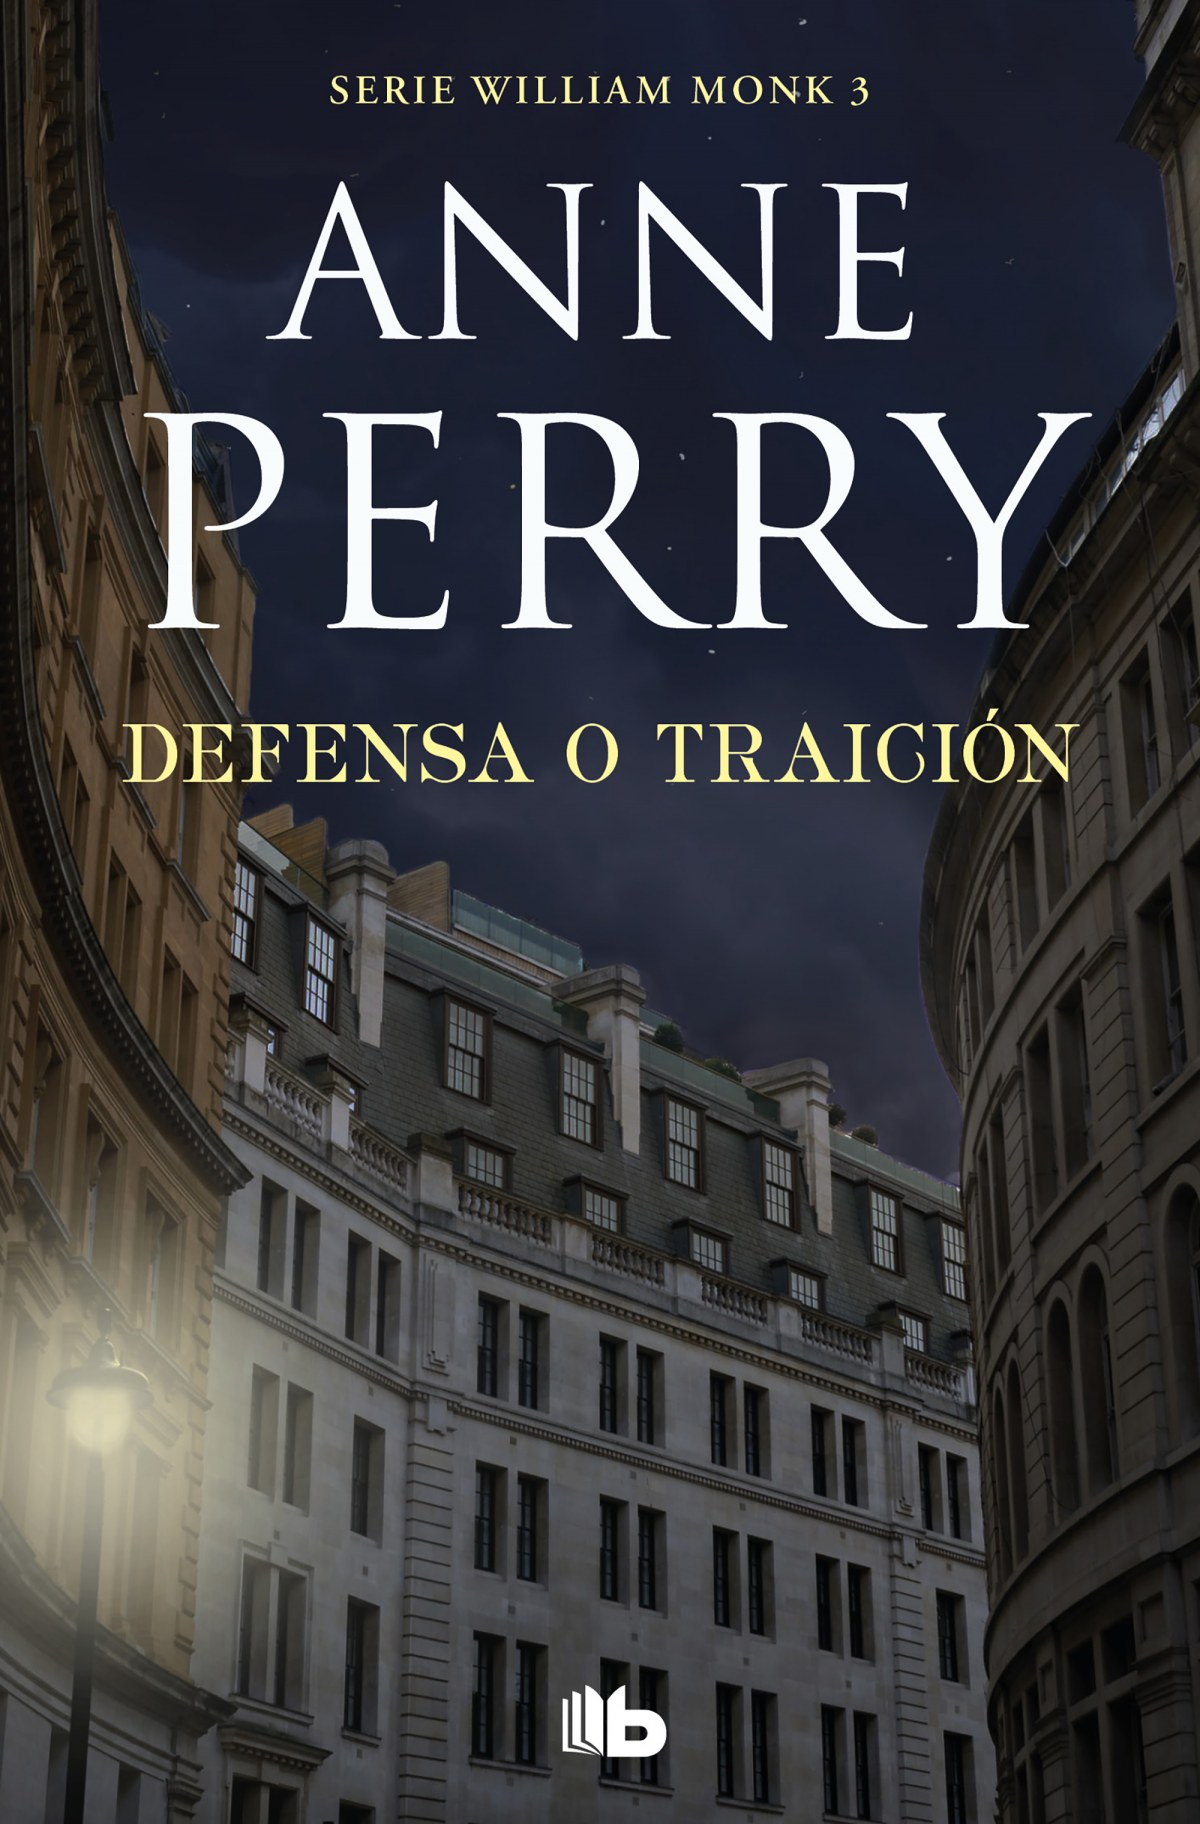 DEFENSA O TRAICION SERIE WILLIAM MONK 3